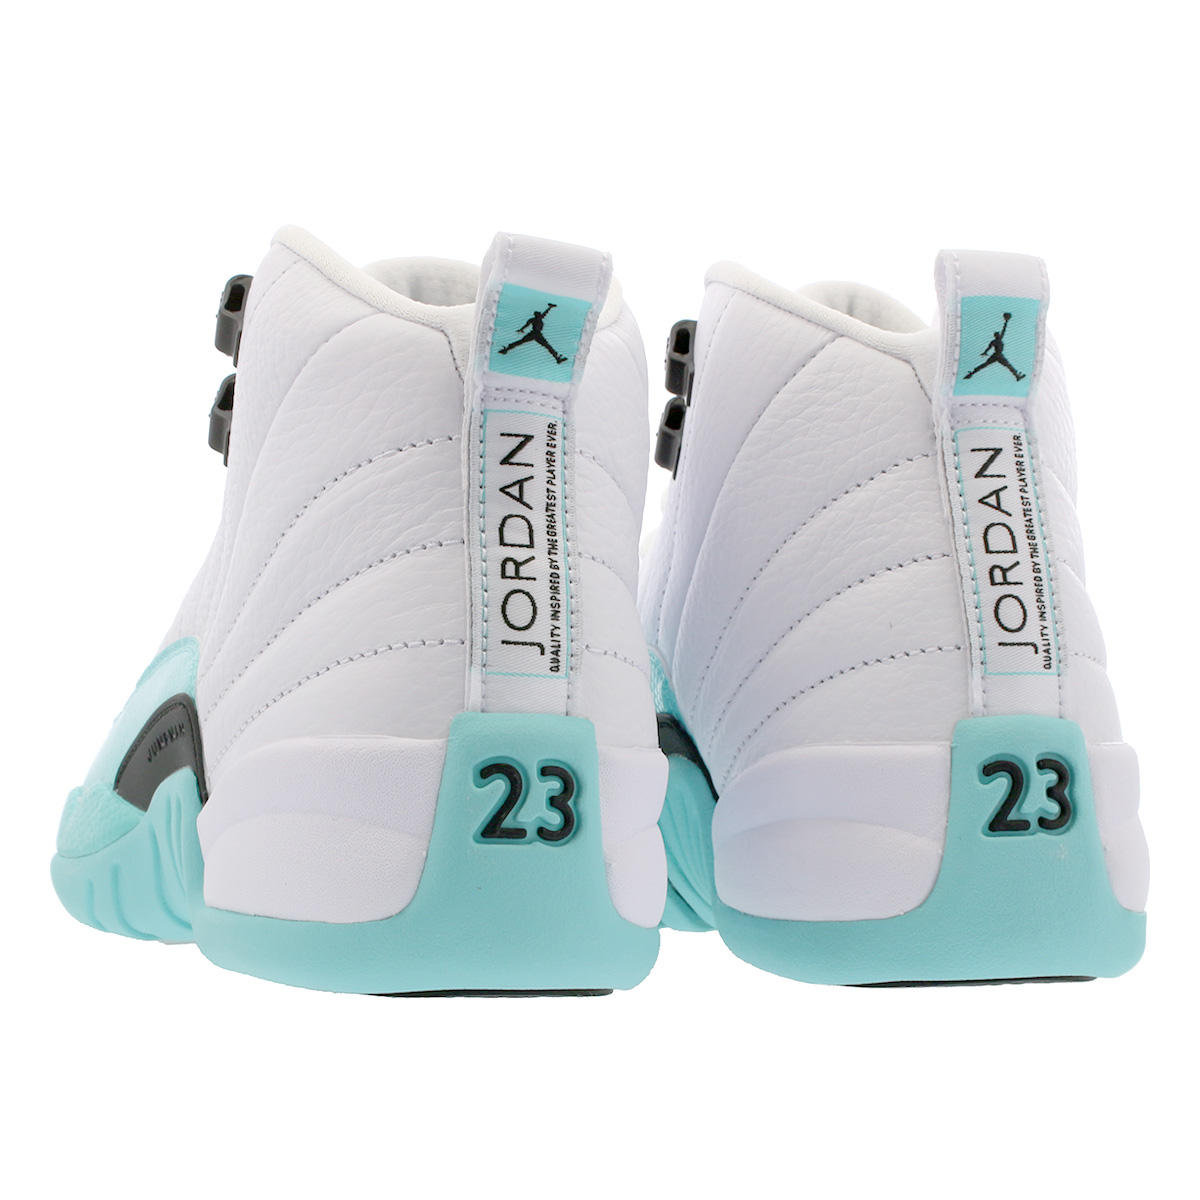 c40ca0927a99 NIKE AIR JORDAN 12 RETRO GG Nike Air Jordan 12 nostalgic GG WHITE LIGHT  AQUA BLACK 510